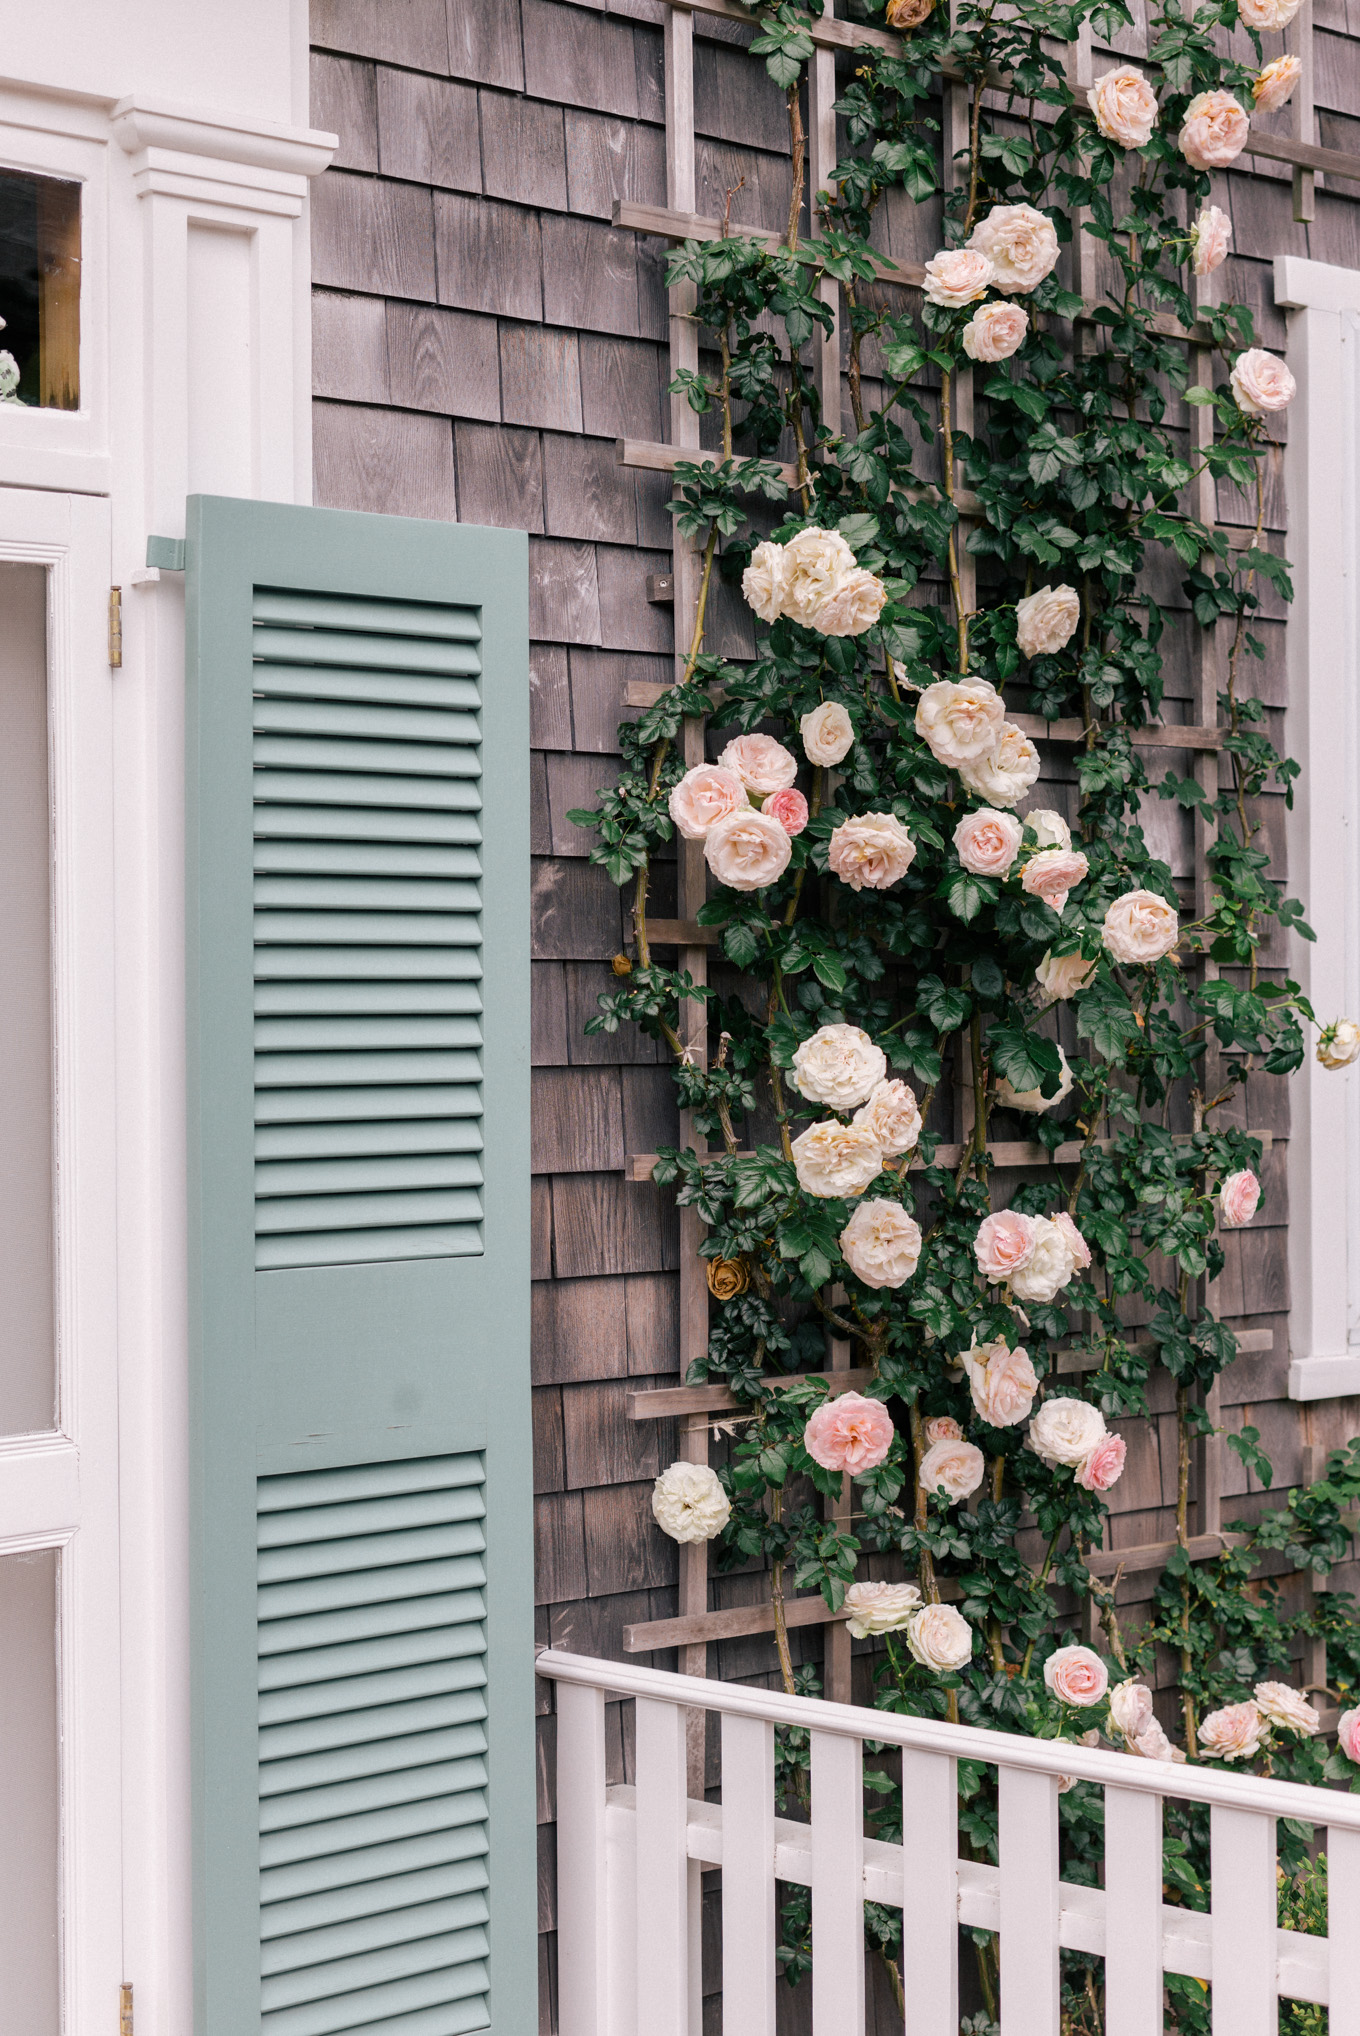 gmg-a-week-on-nantucket-part-two-1008498